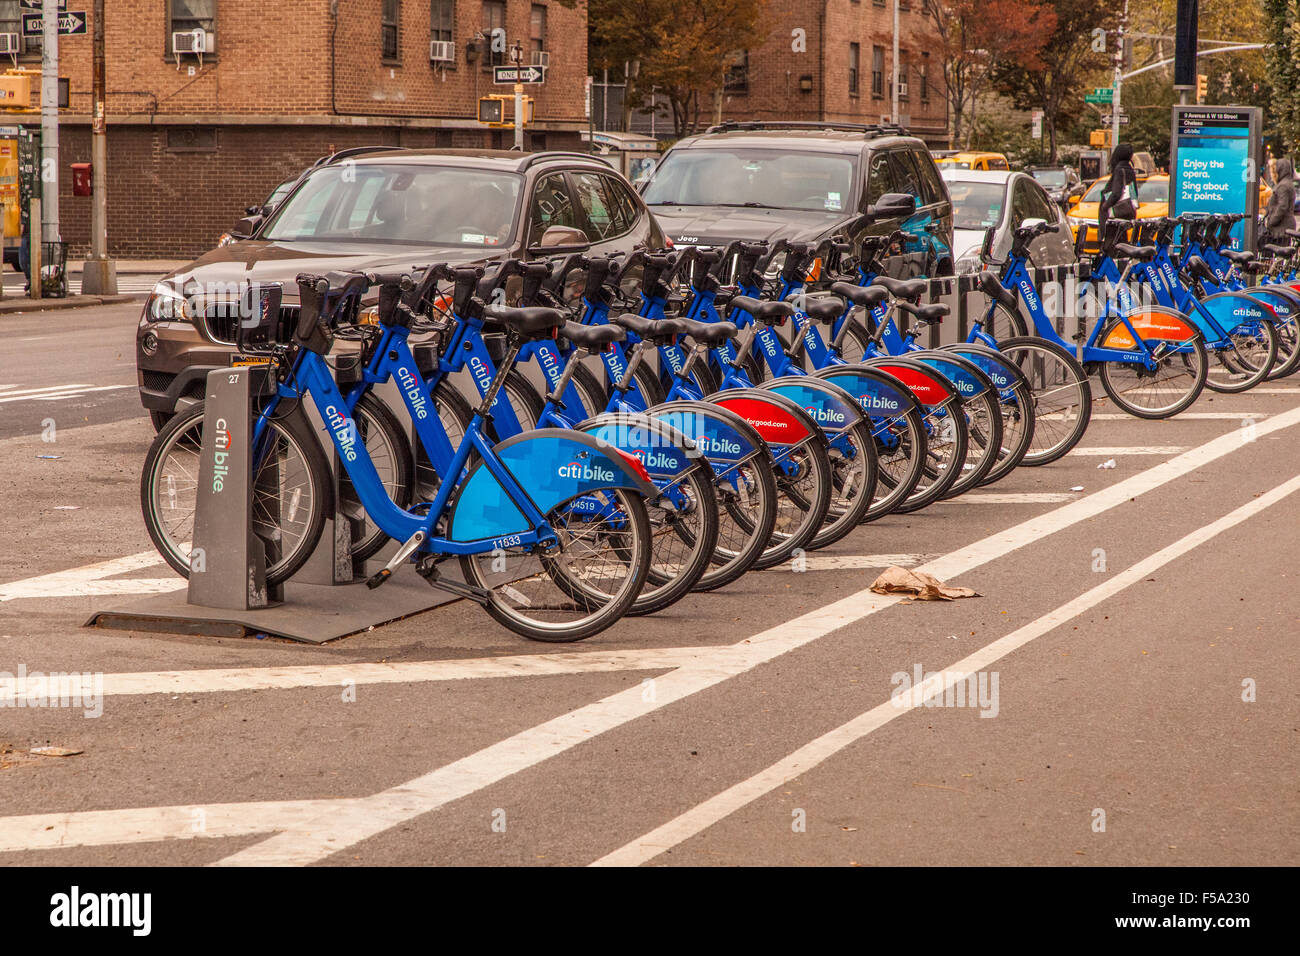 Citi-bike station, Citibike is a bicycle-sharing system or bike-share scheme, Based in New York City, United States - Stock Image